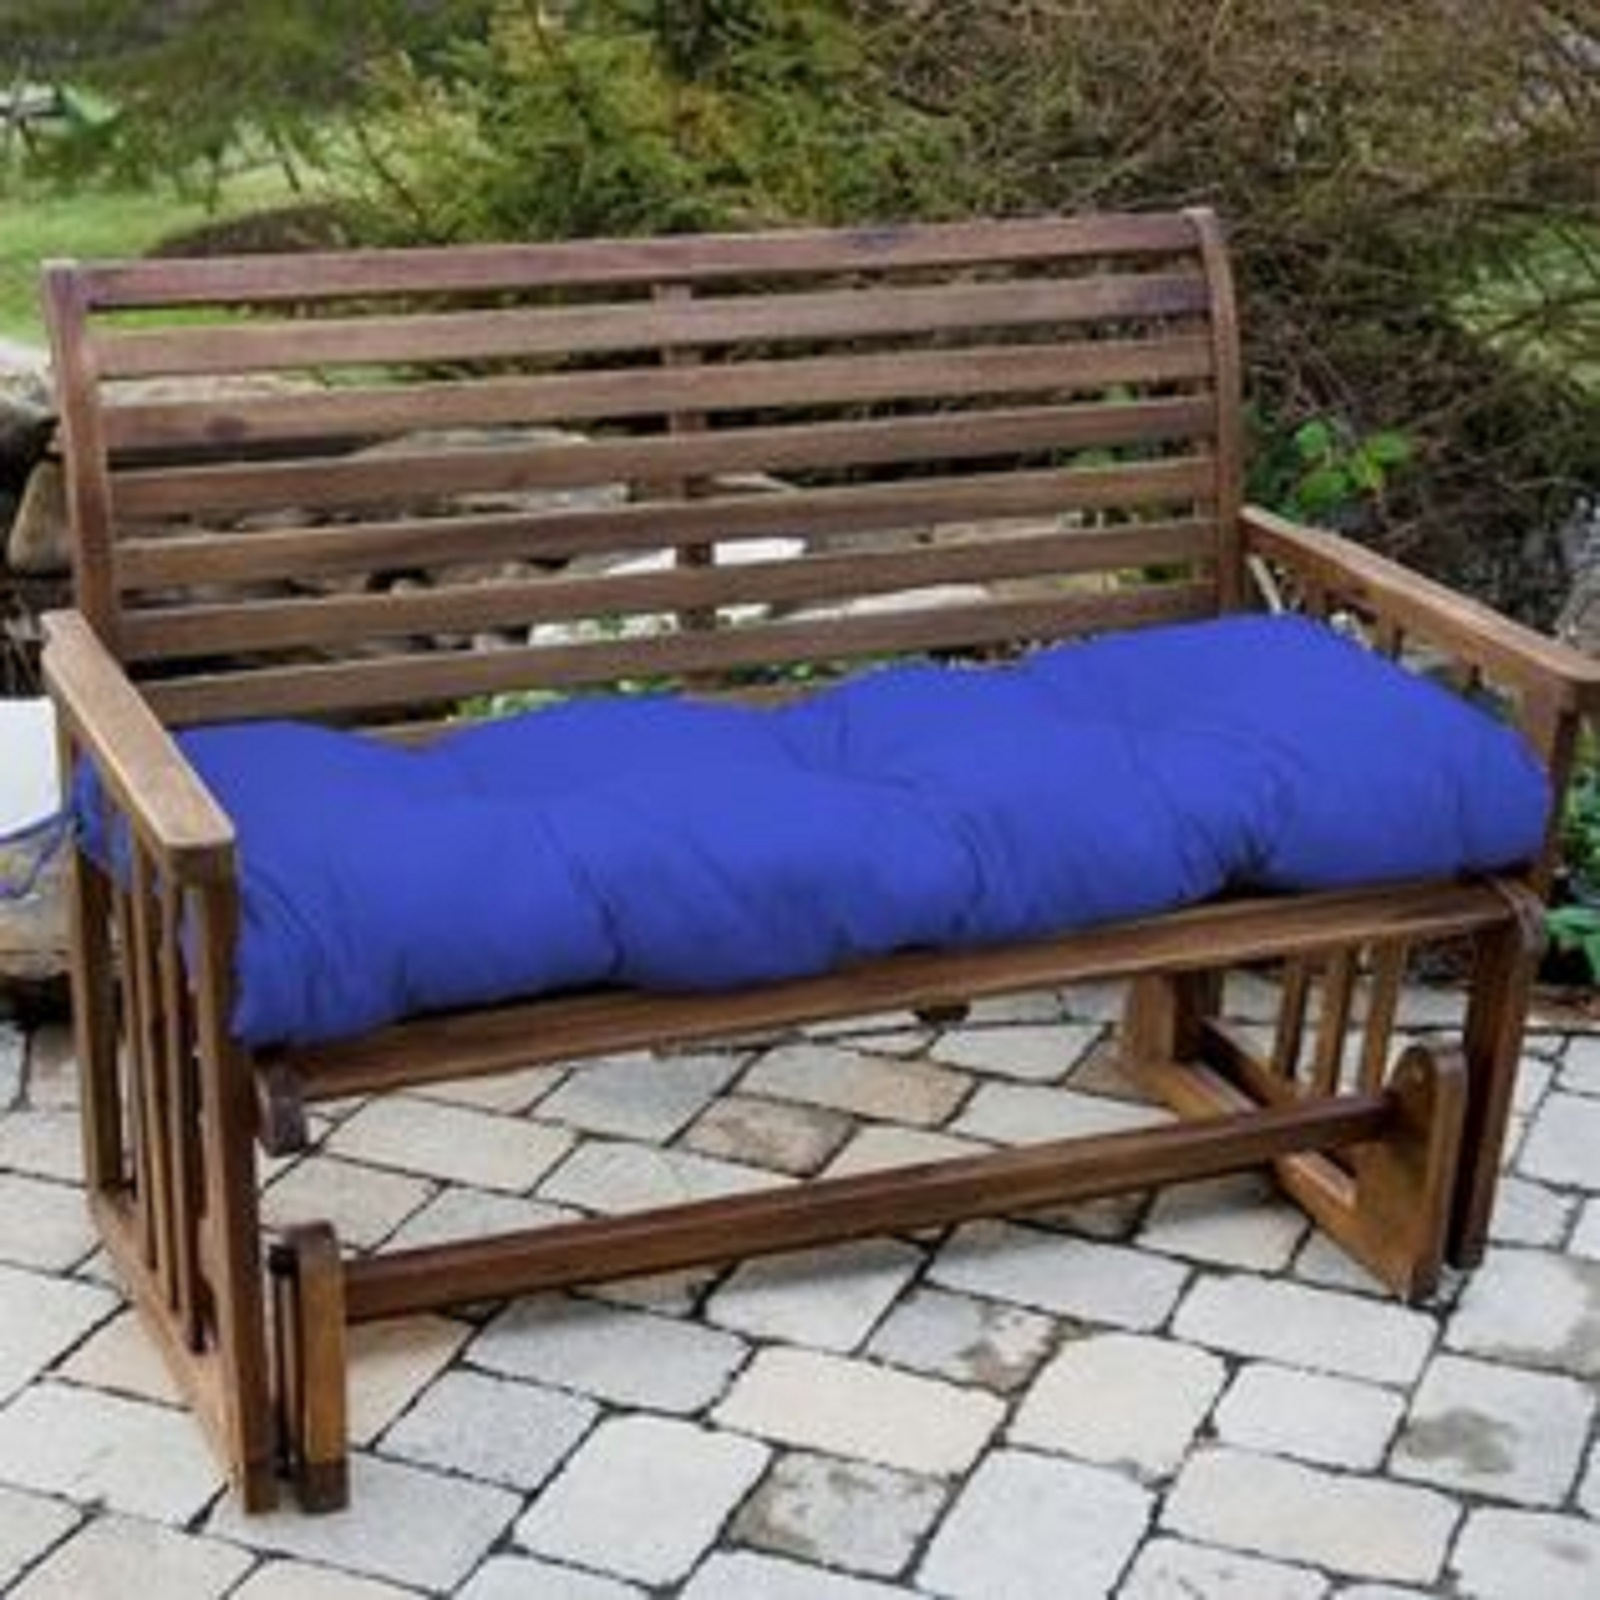 Greendale Home Fashions 51 in. Outdoor Bench Cushion, Marine Blue